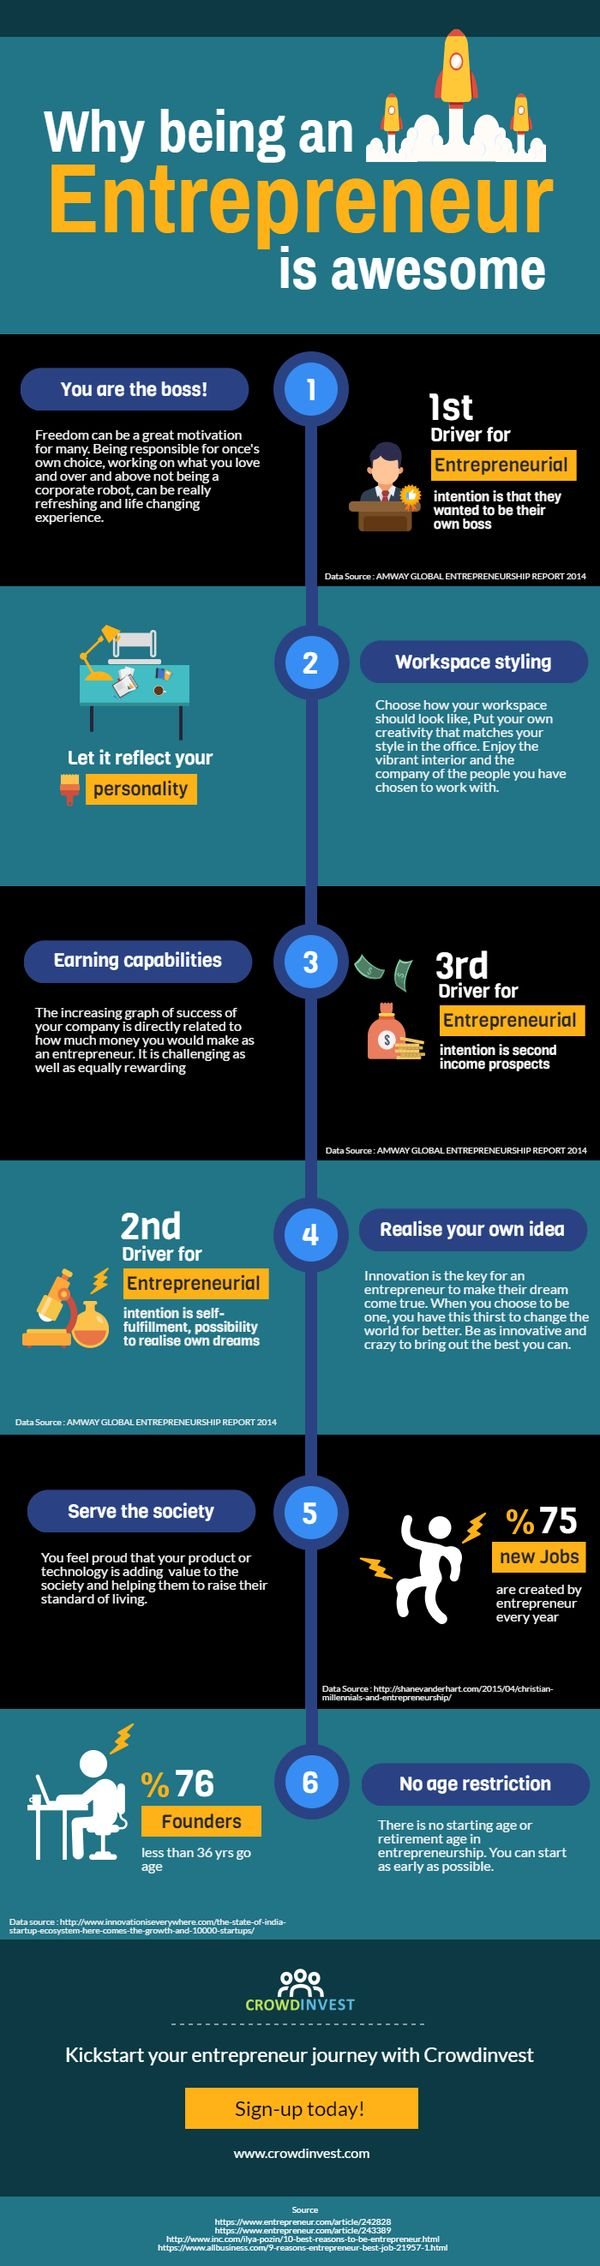 Why being an entrepr